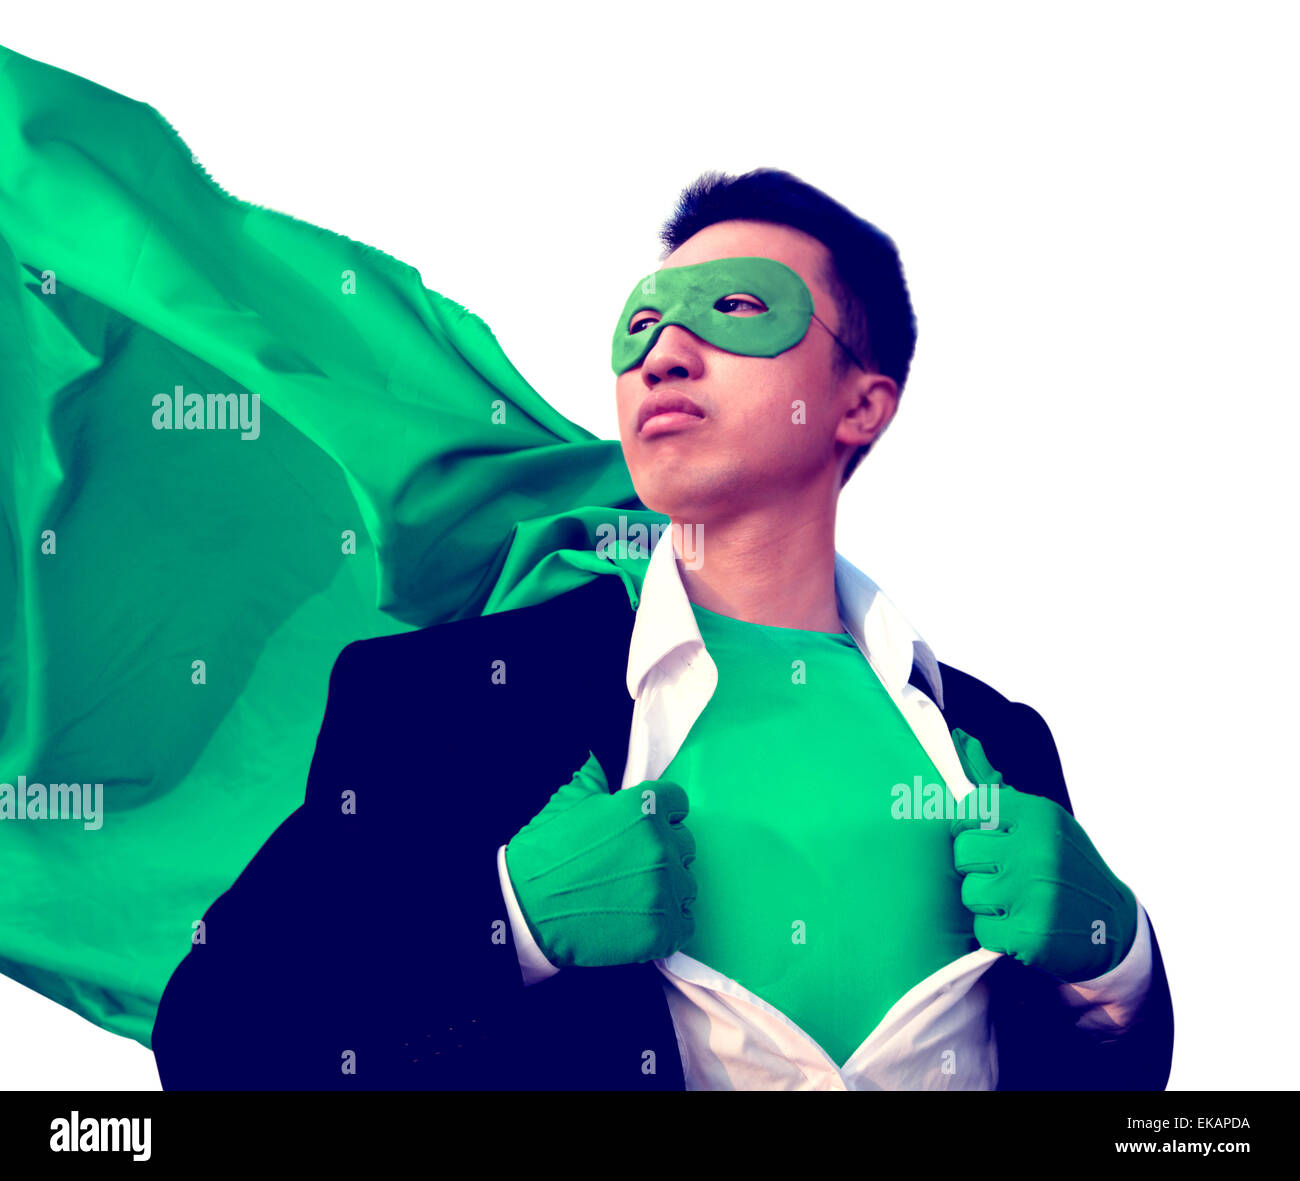 Superhero Protect Strong Victory Determination Fantasy Professional Concept - Stock Image